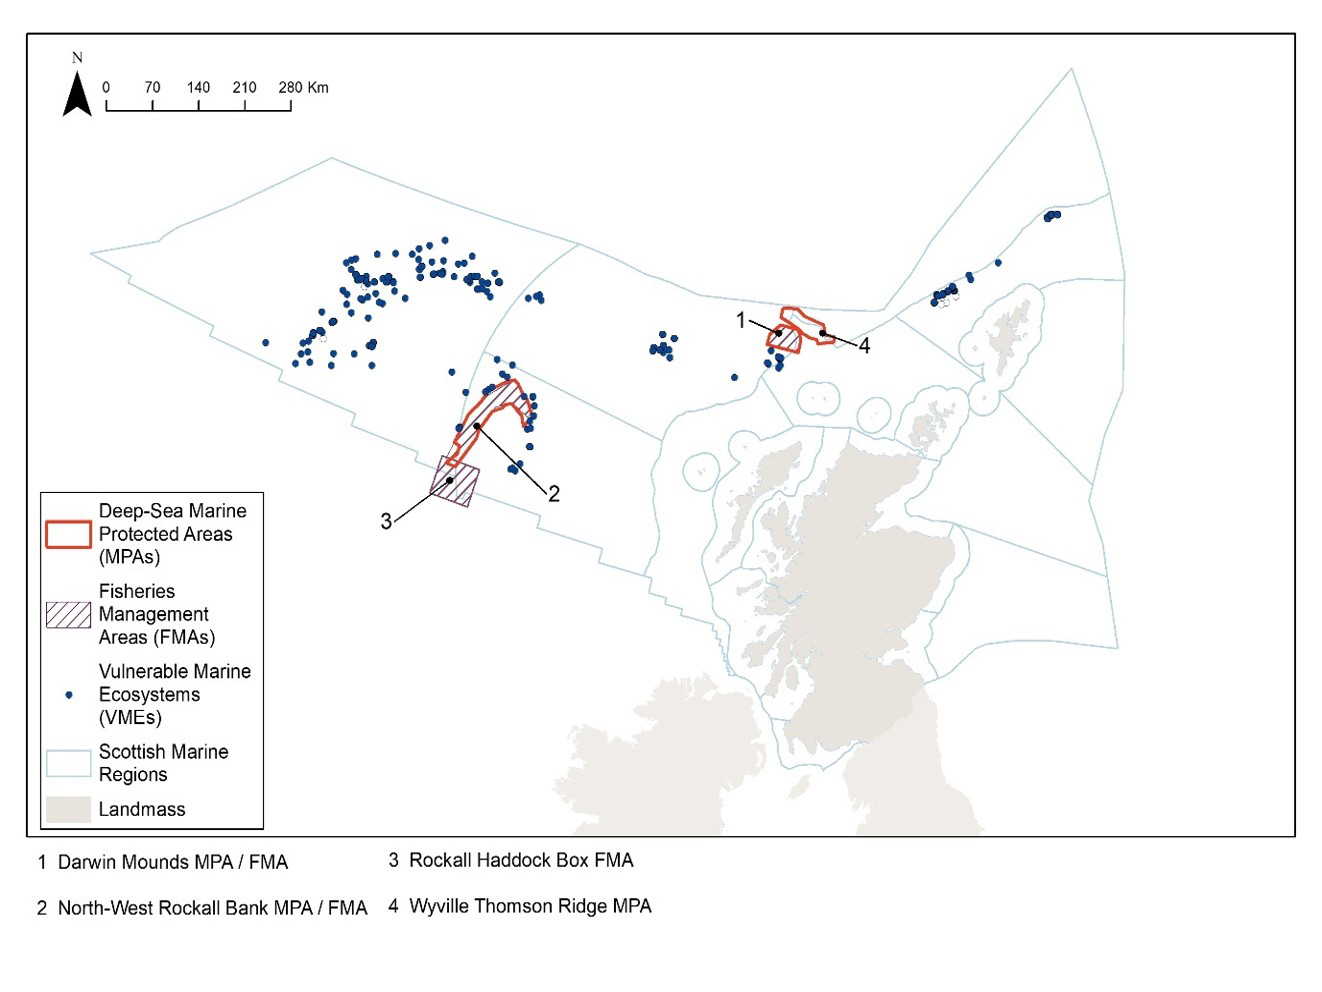 Figure 9. Distribution of Deep-sea Marine Protected Areas (MPAs) and Vulnerable Marine Ecosystems (VMEs) in Scottish waters in 2011 and the Fisheries Management Areas in place.